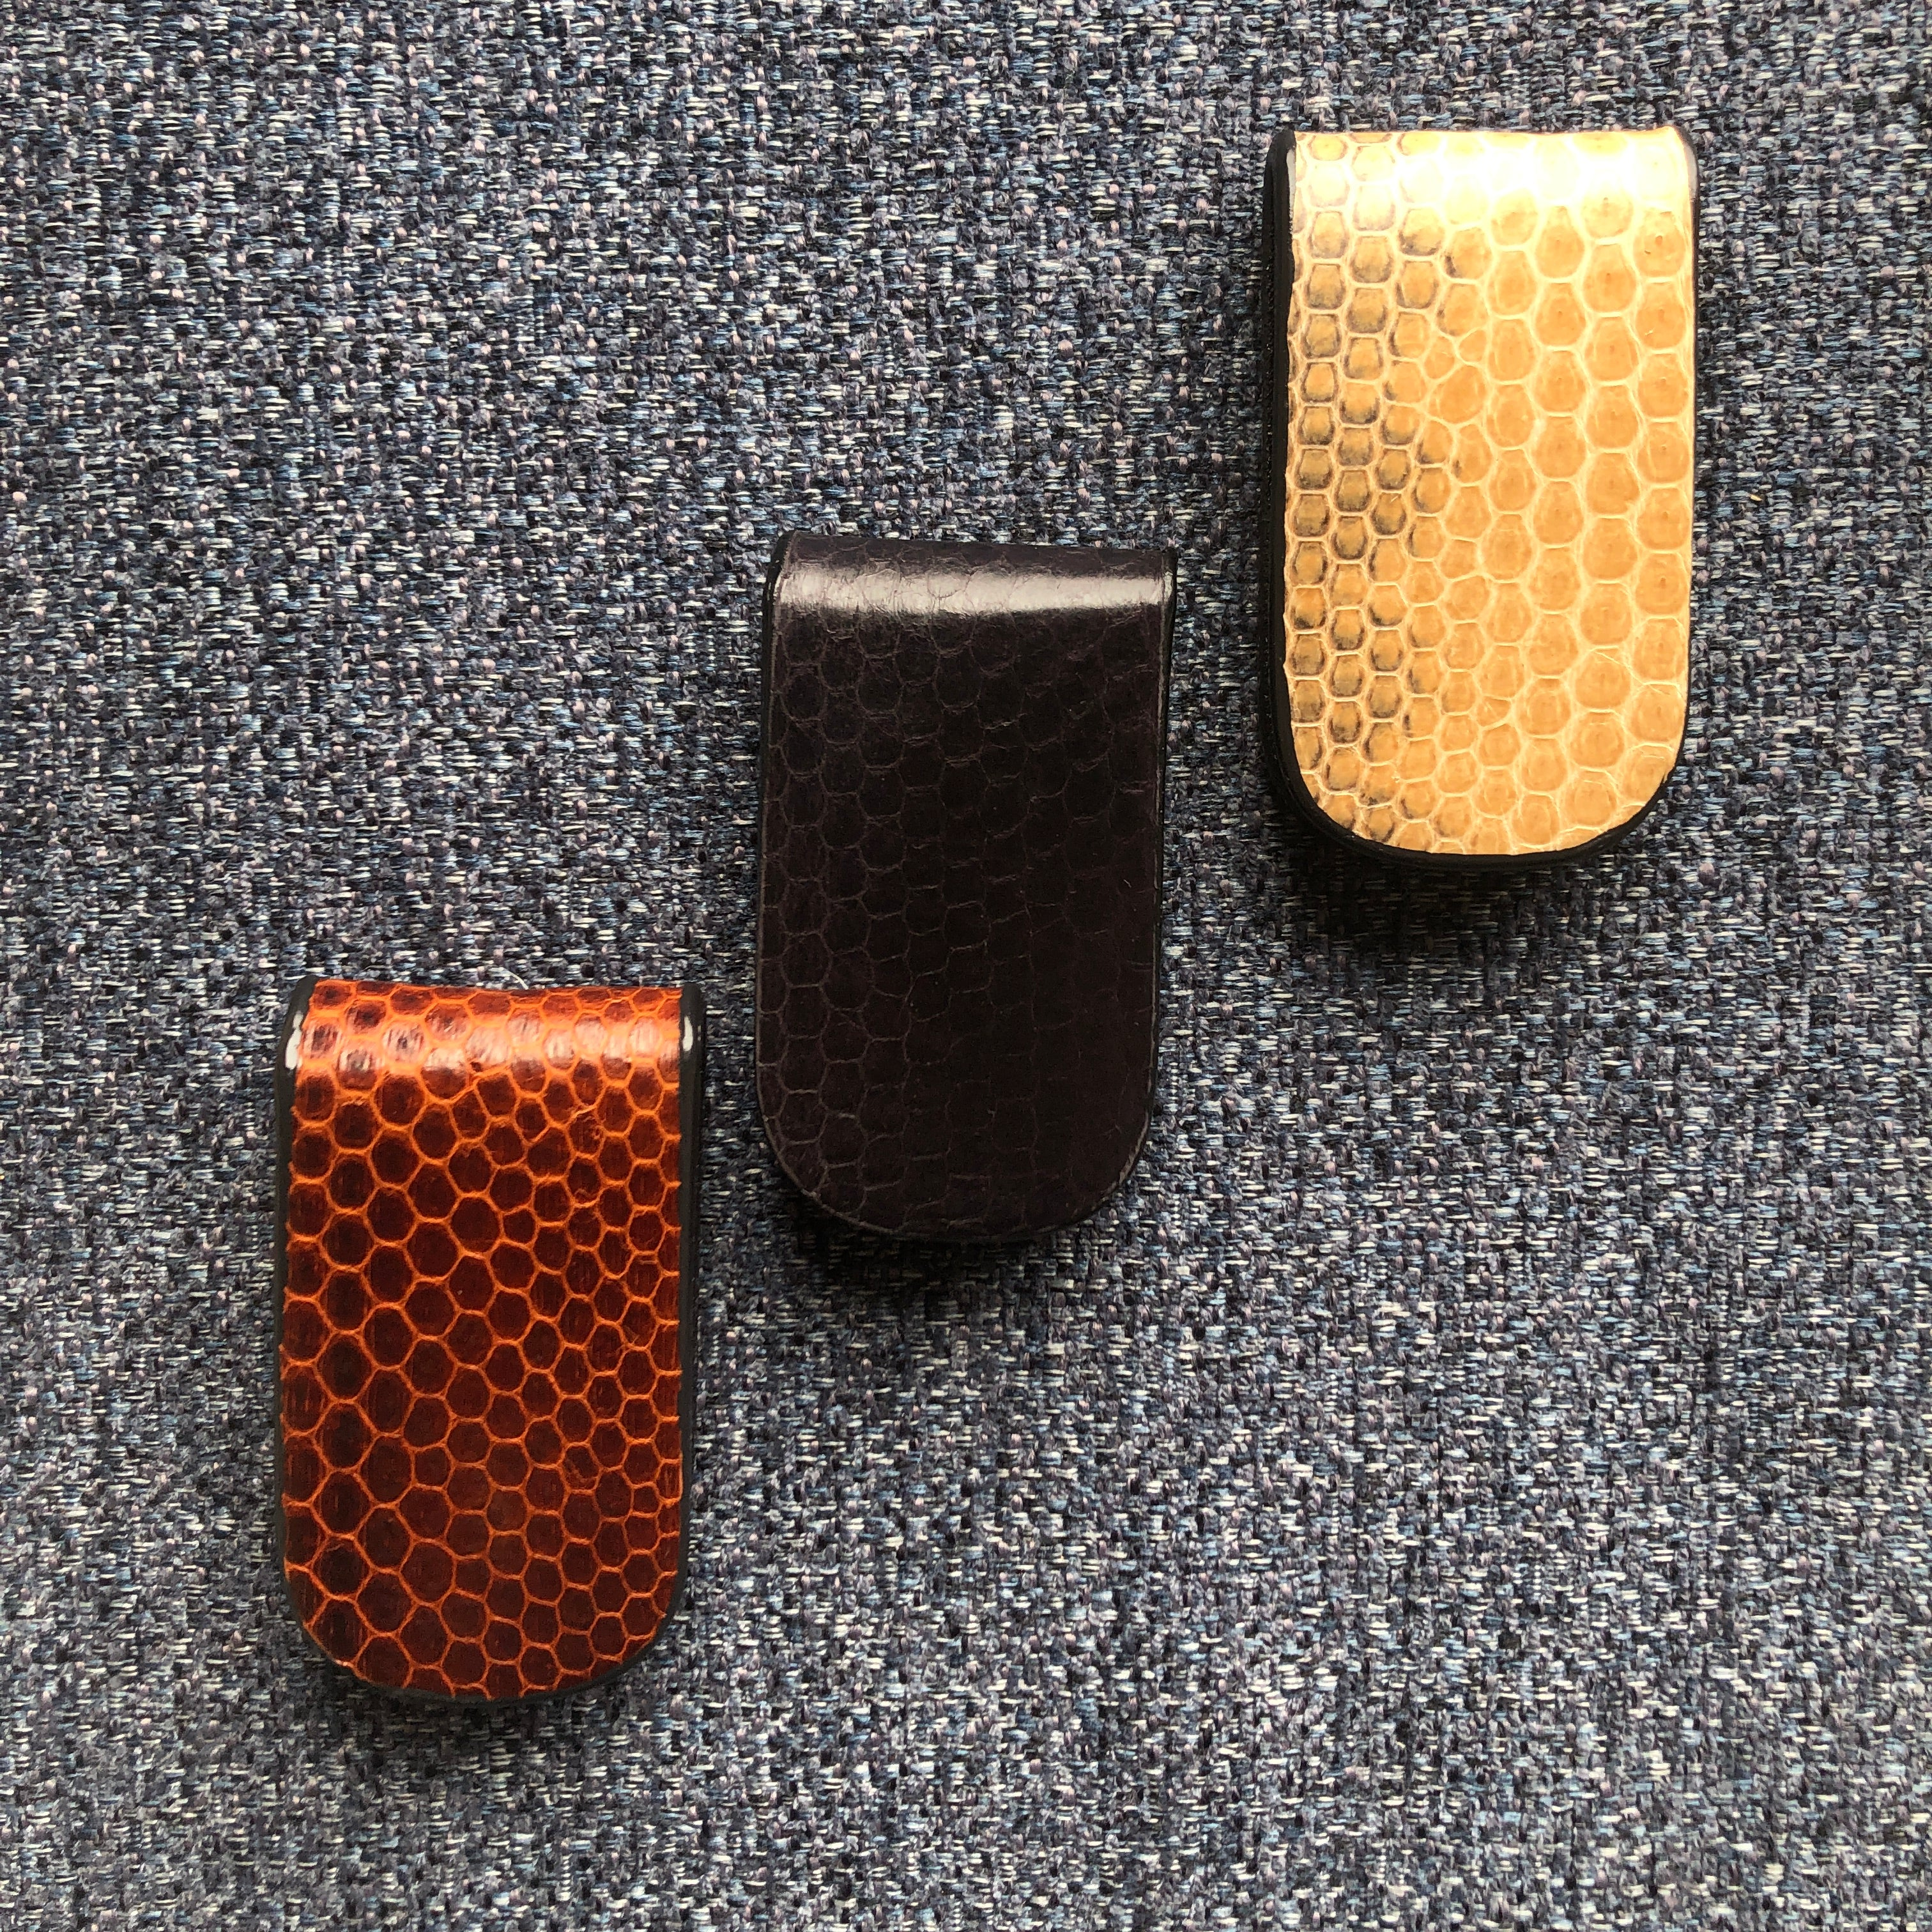 Snakeskin Money Clips